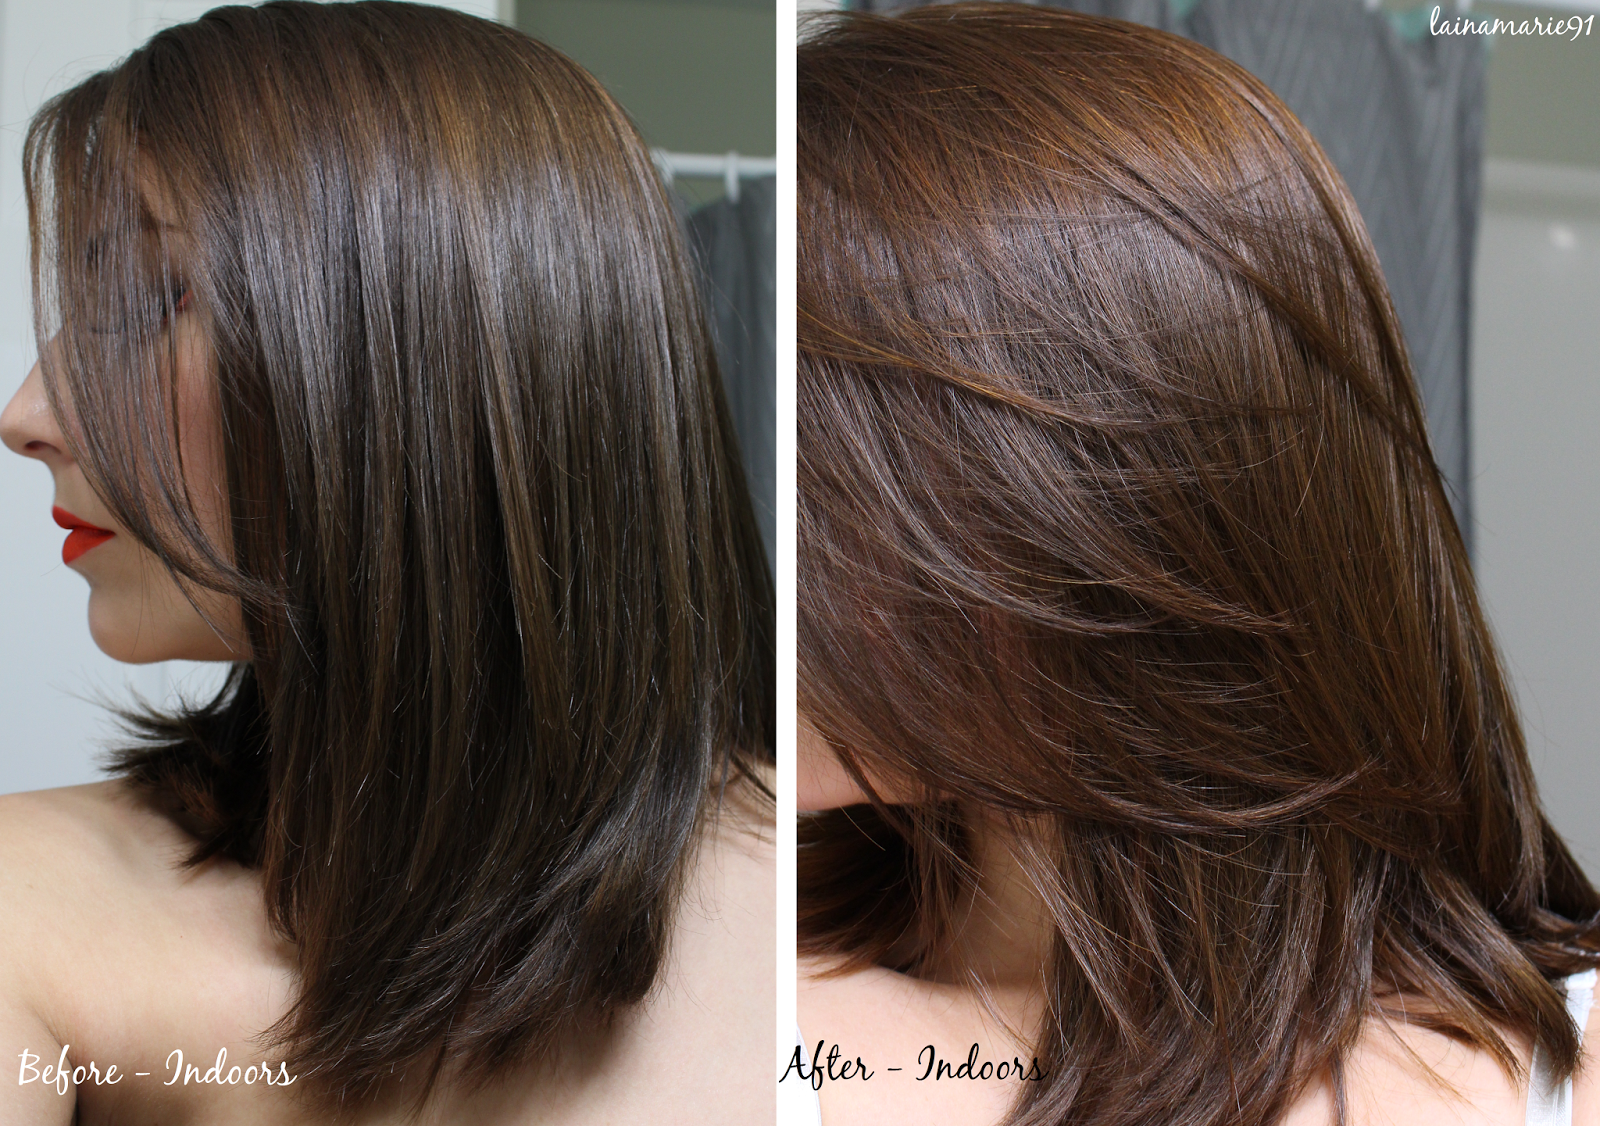 Lush Caca Rouge Henna Hair Dye Before After Dark Lots Of Pictures